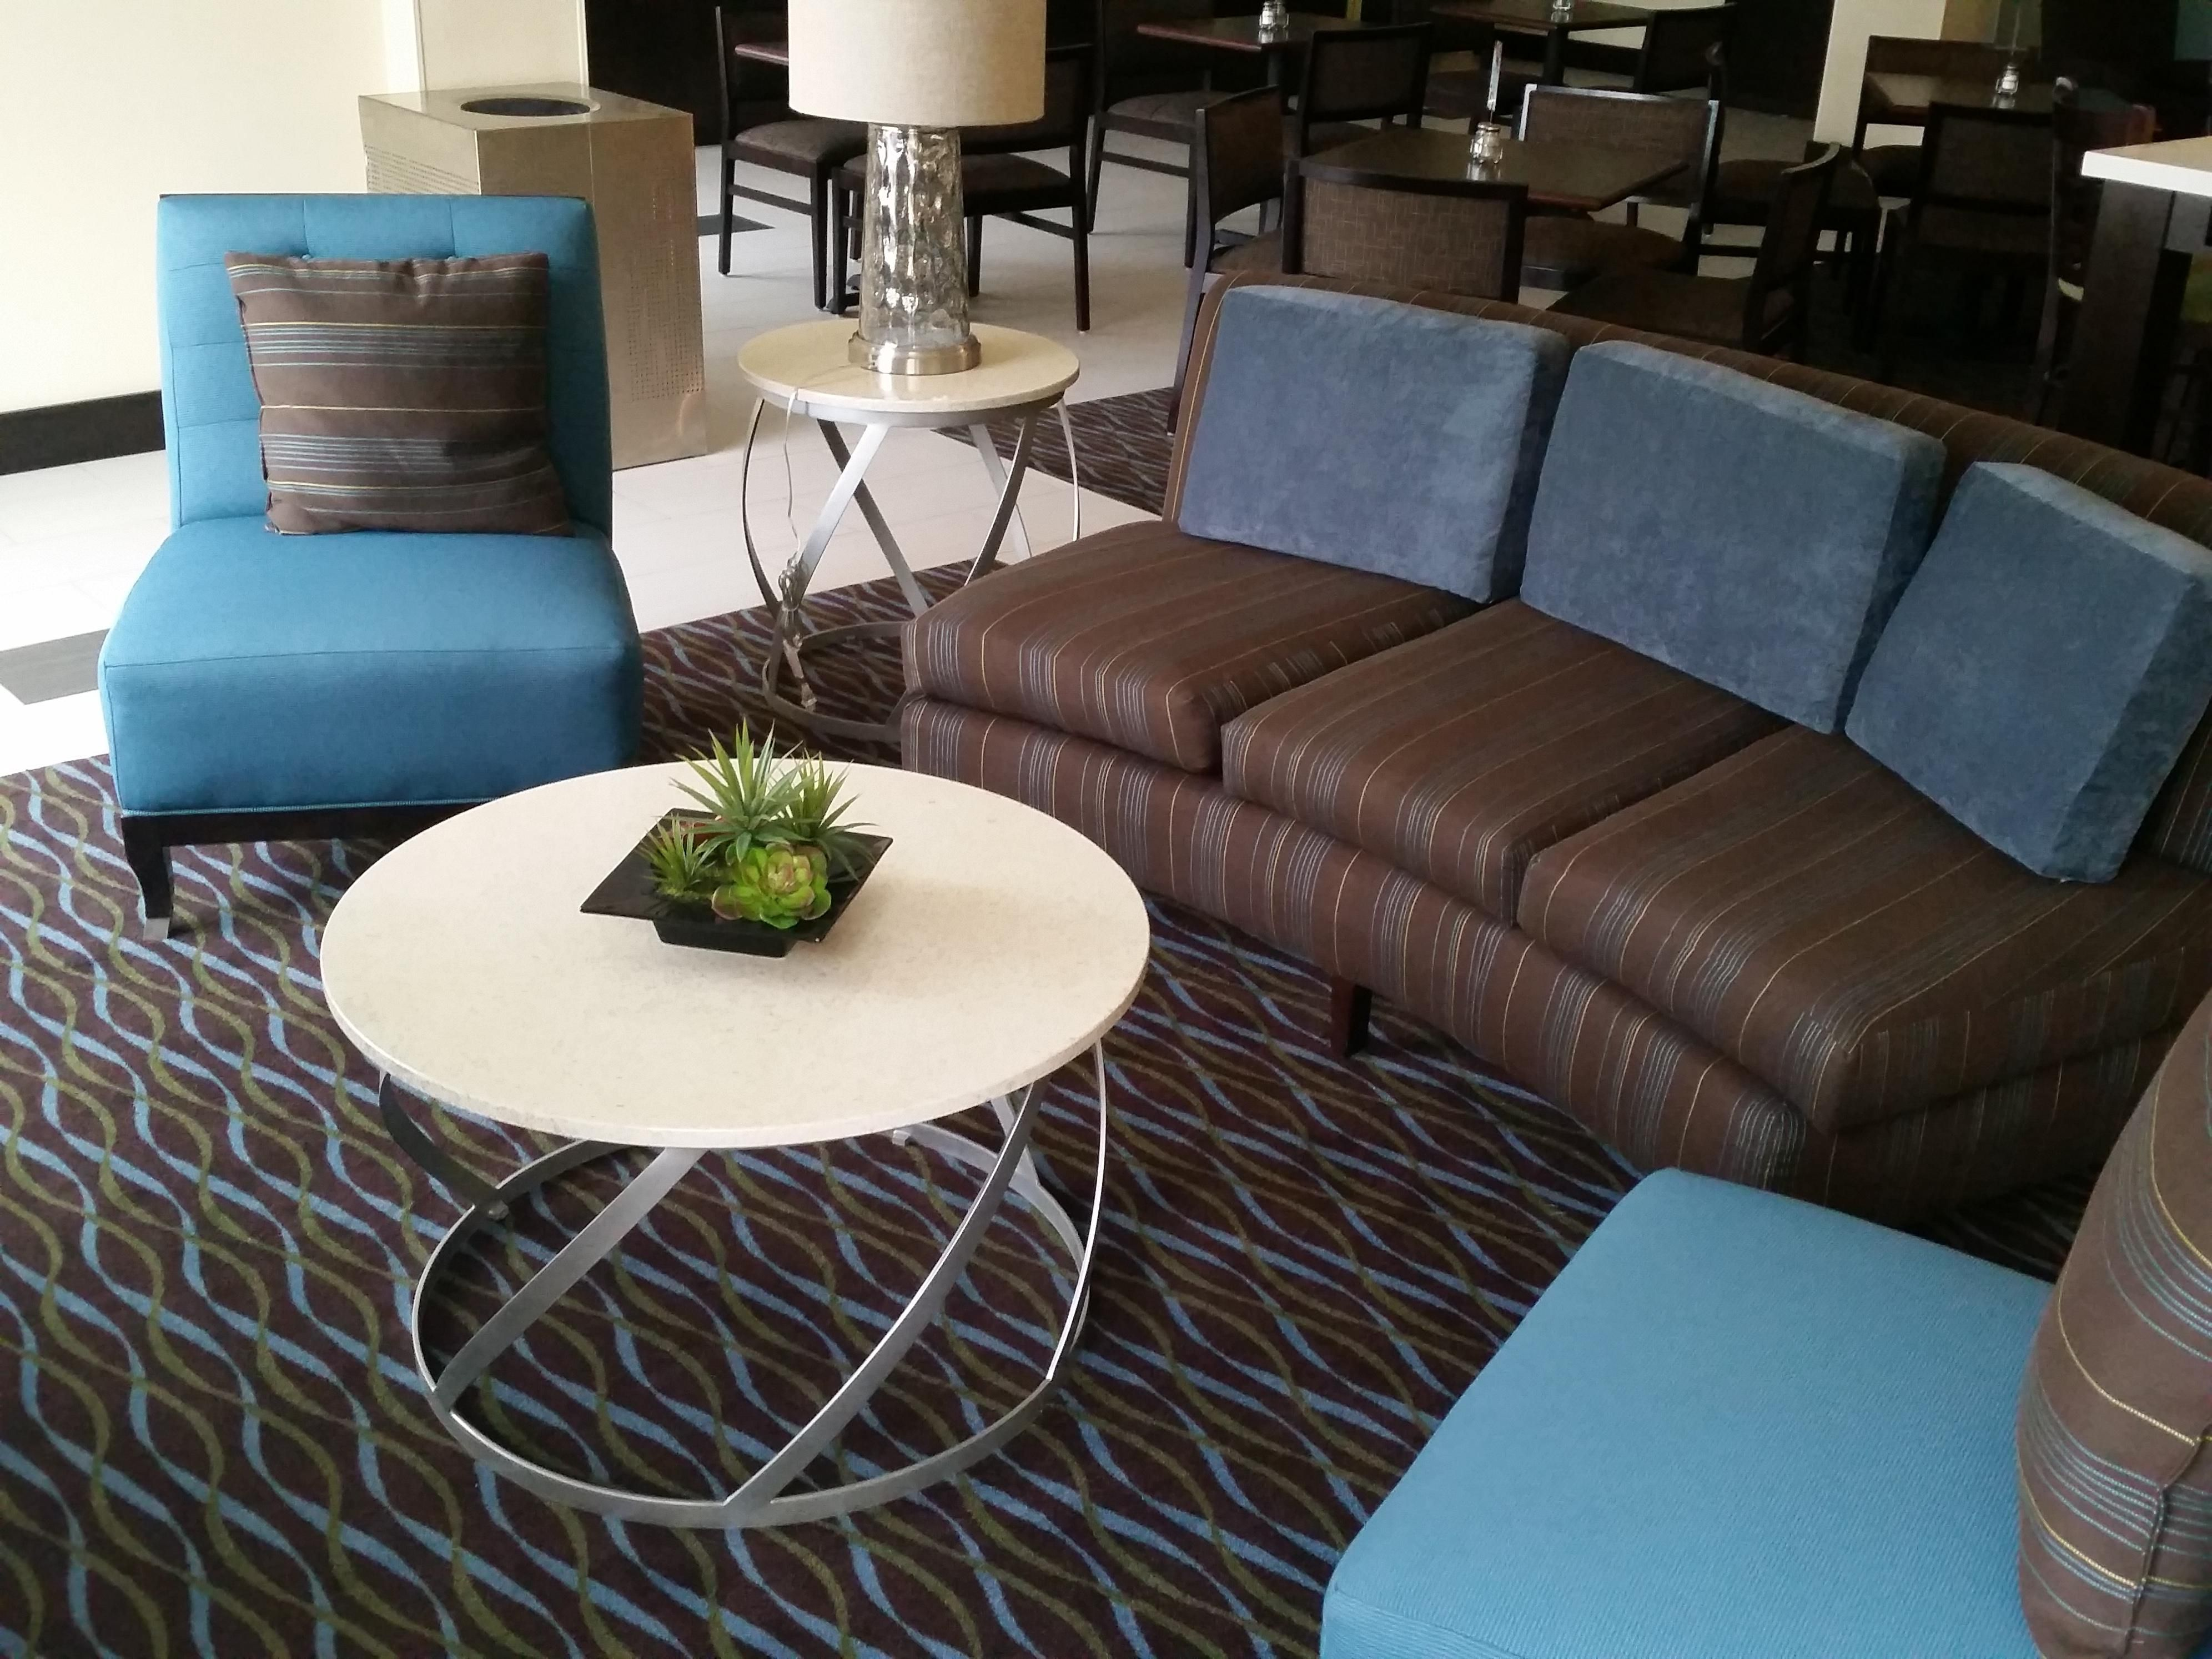 Relax with family and friends on our comfy lobby sofa and chairs